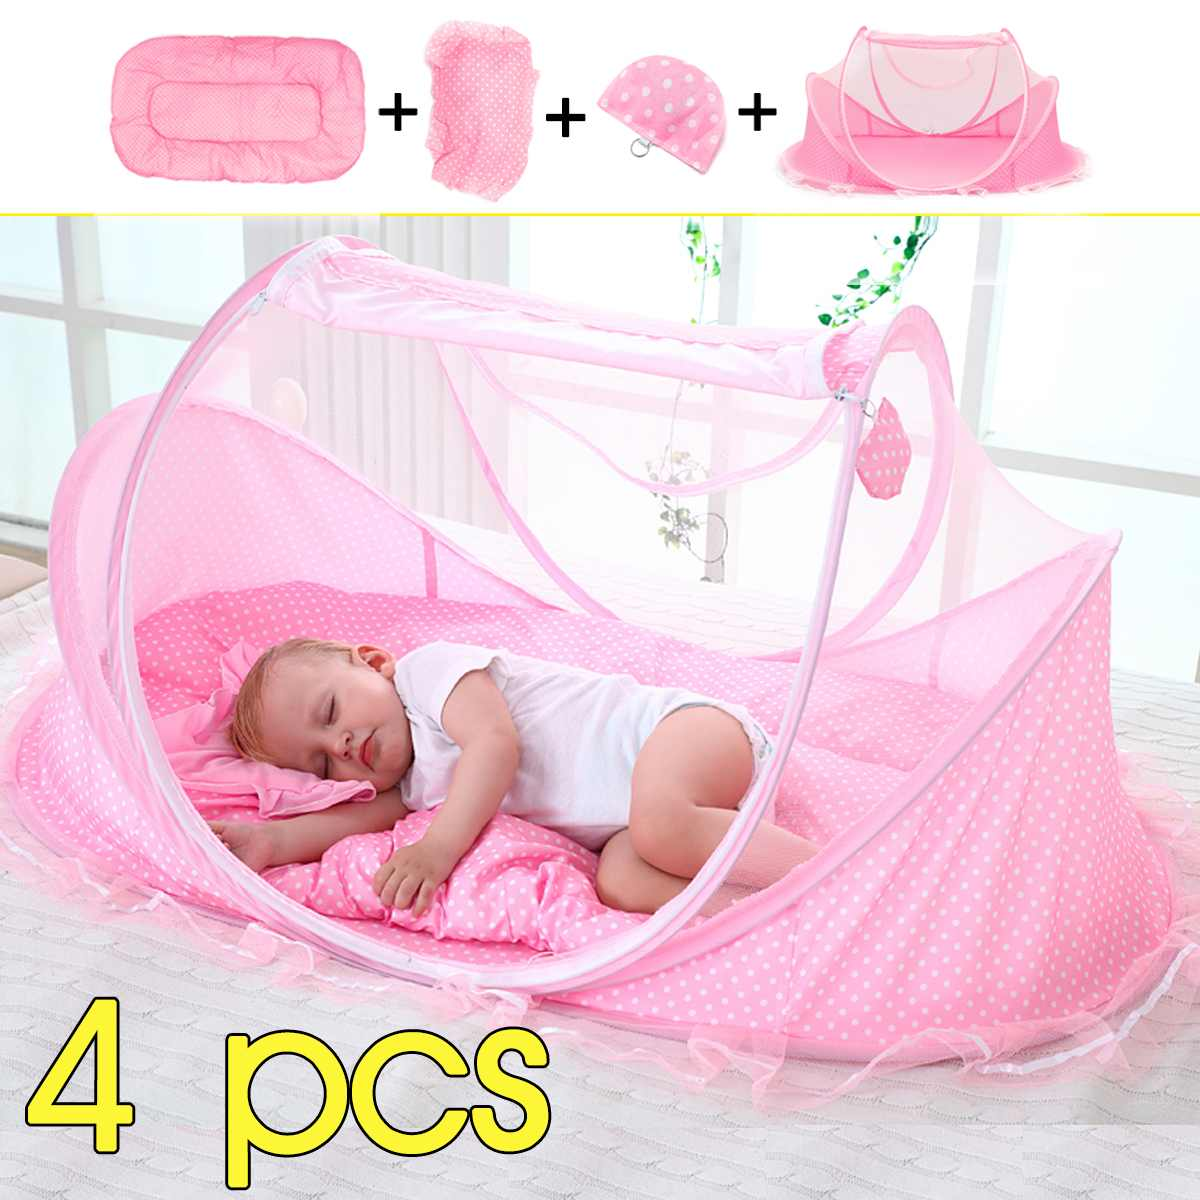 4 pcs baby pillow set with one pillow